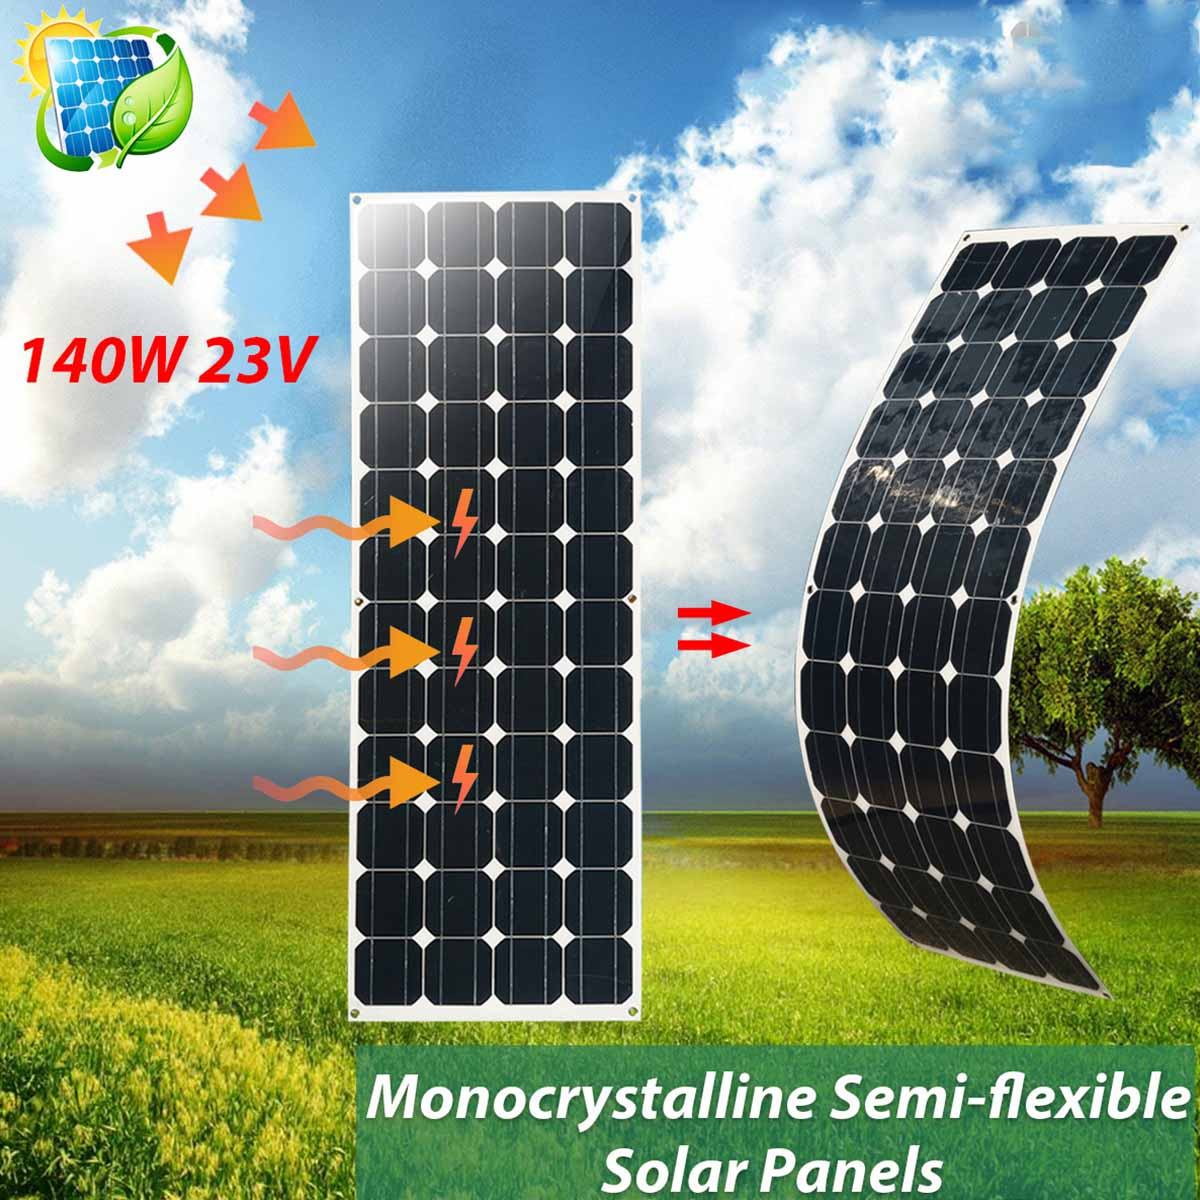 KINCO 140W 23V Semi-flexible Solar Panels Monocrystalline DIY Solar Cell Light Weight System For Car Battery With 1.5m Cable